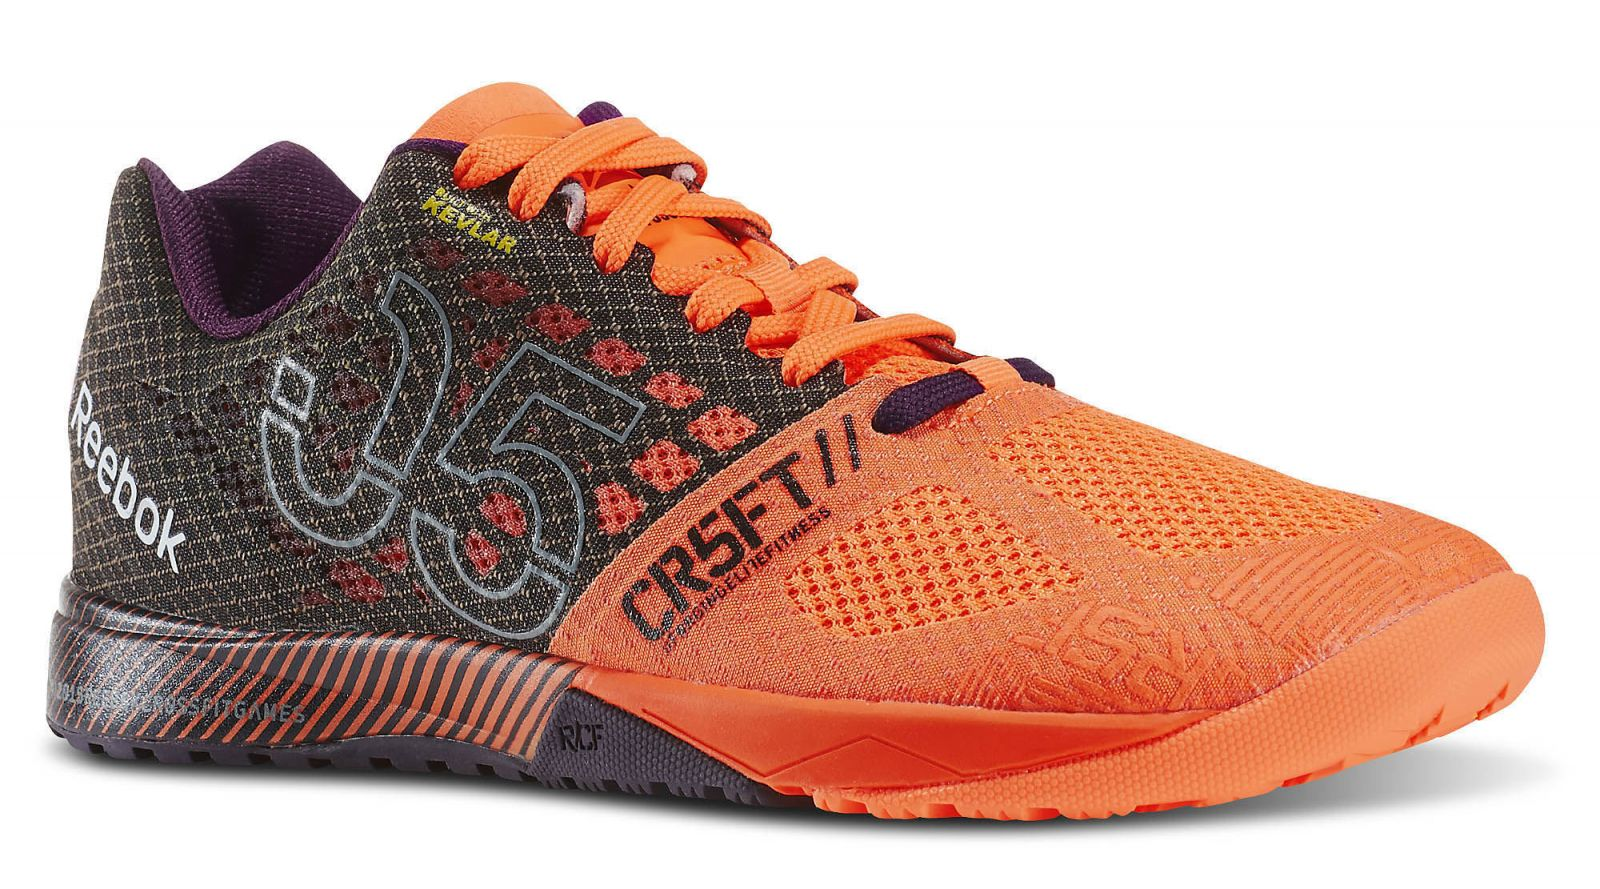 Crossfit Brand Shoes